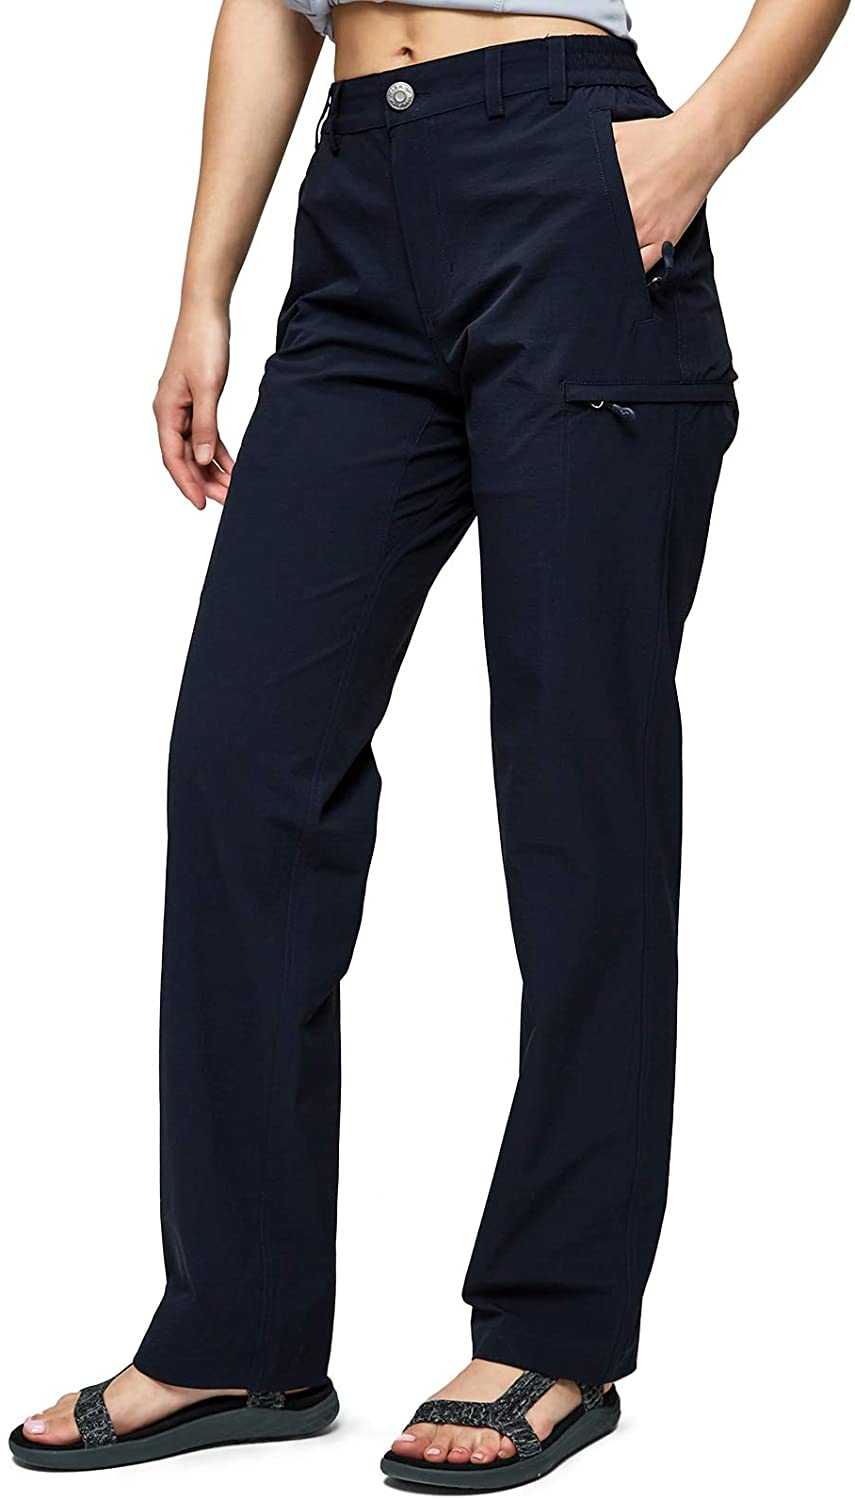 MIER Women's Low price Quick Dry Cargo Tactical Pants P ! Super beauty product restock quality top! Lightweight Hiking